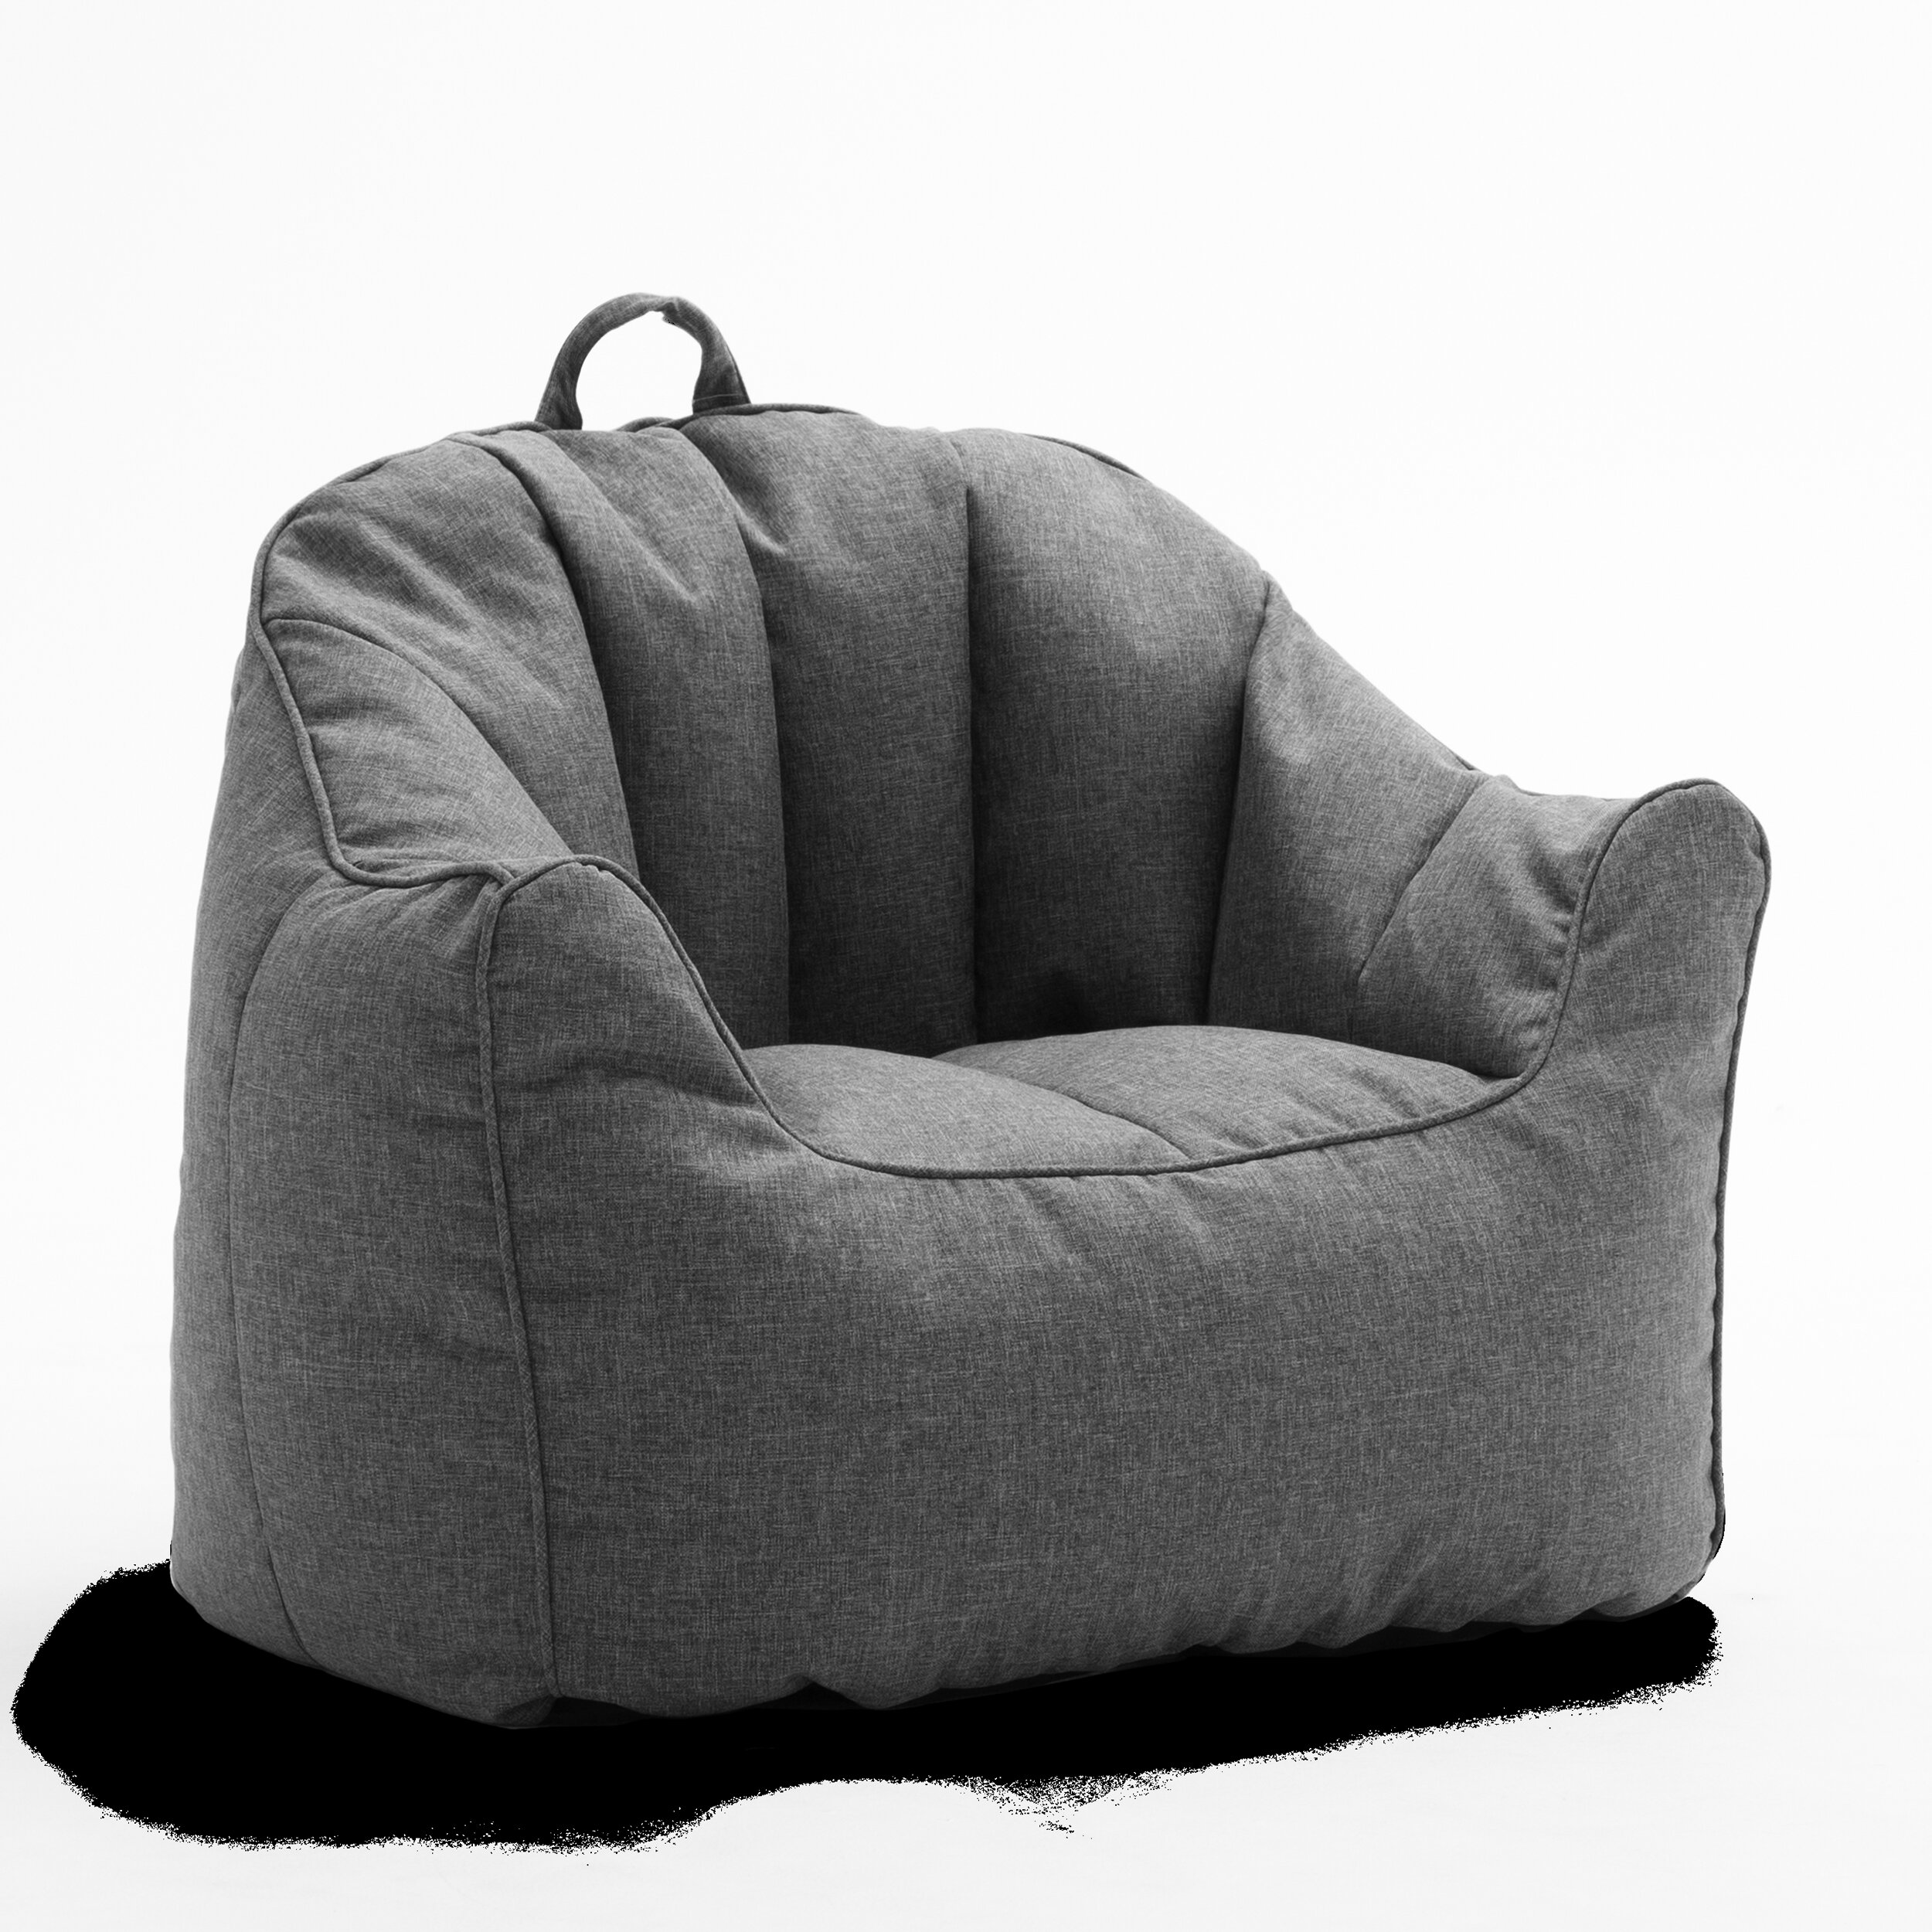 Comfort Research Big Joe Lux Hug Bean Bag Chair Wayfair